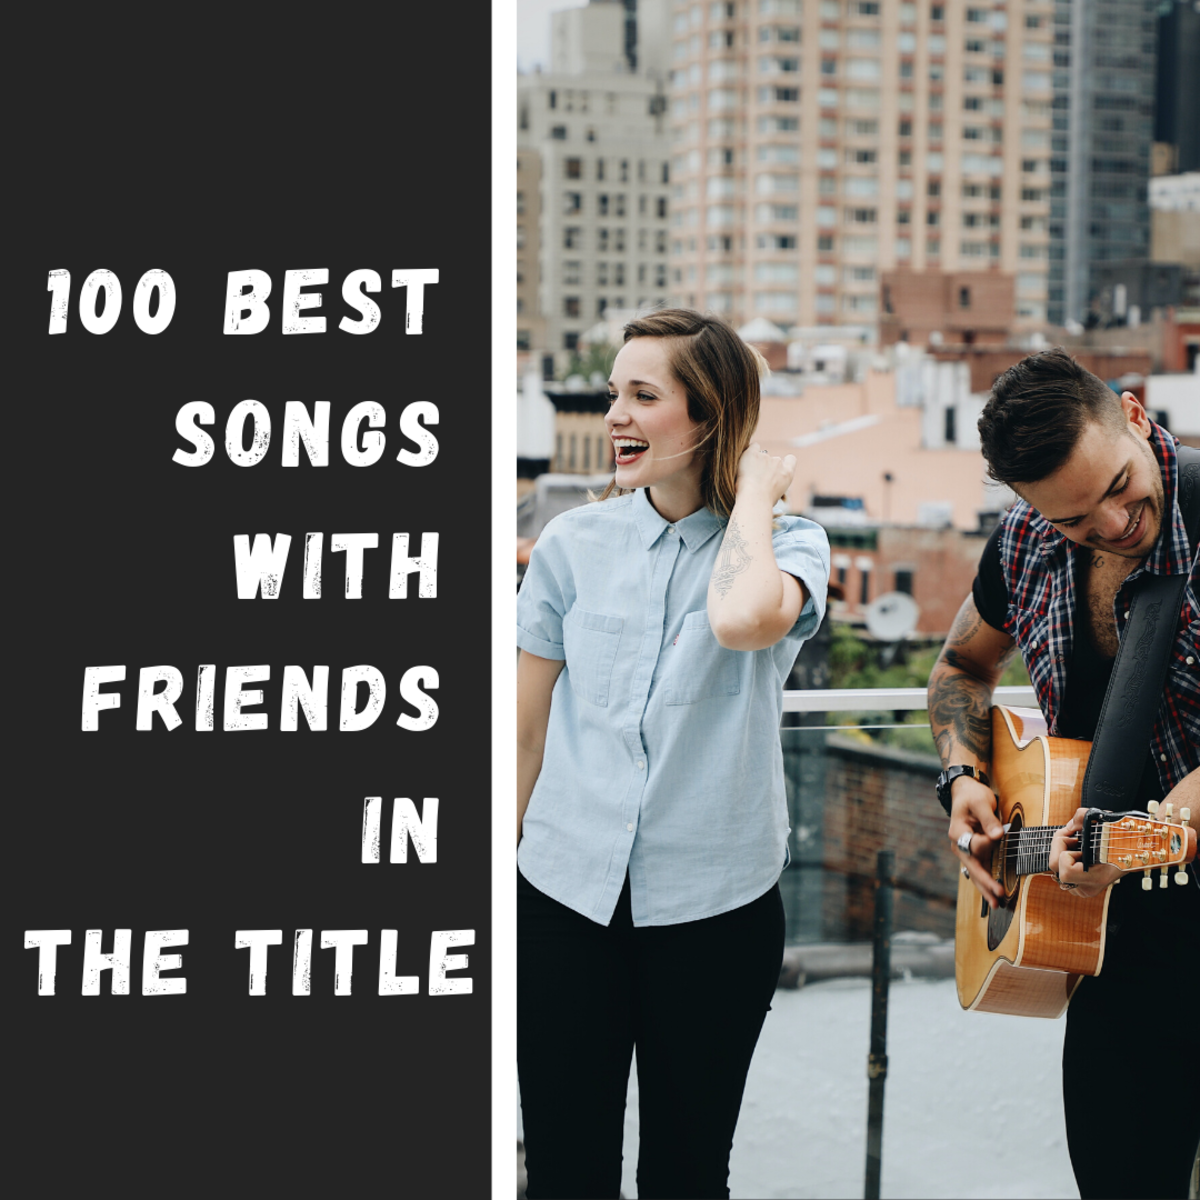 These songs are perfect to listen to when you're hanging out with your best friends.